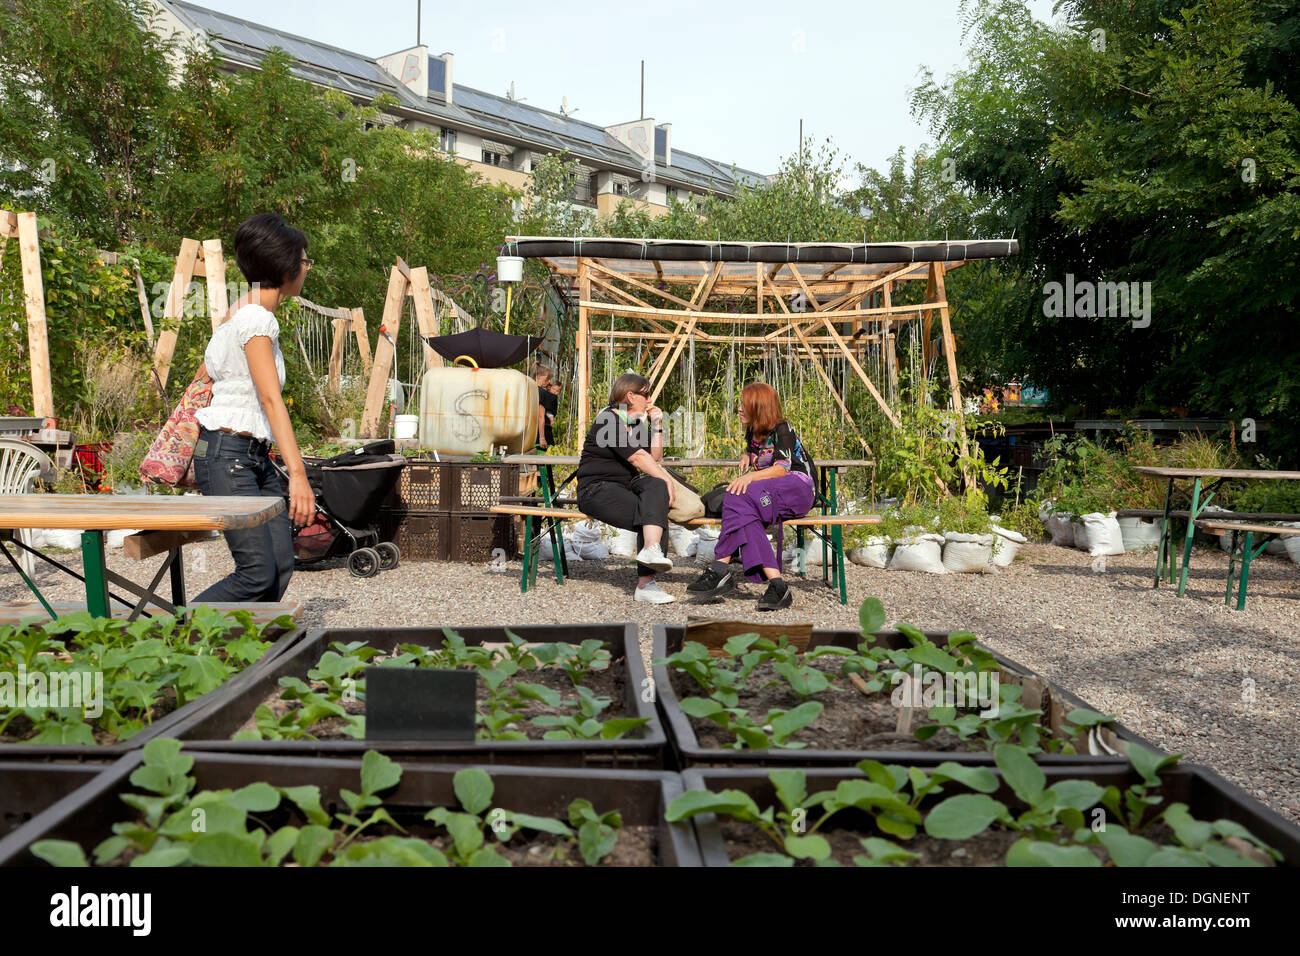 berlin germany urban gardening in the princess gardens at stock photo royalty free image. Black Bedroom Furniture Sets. Home Design Ideas